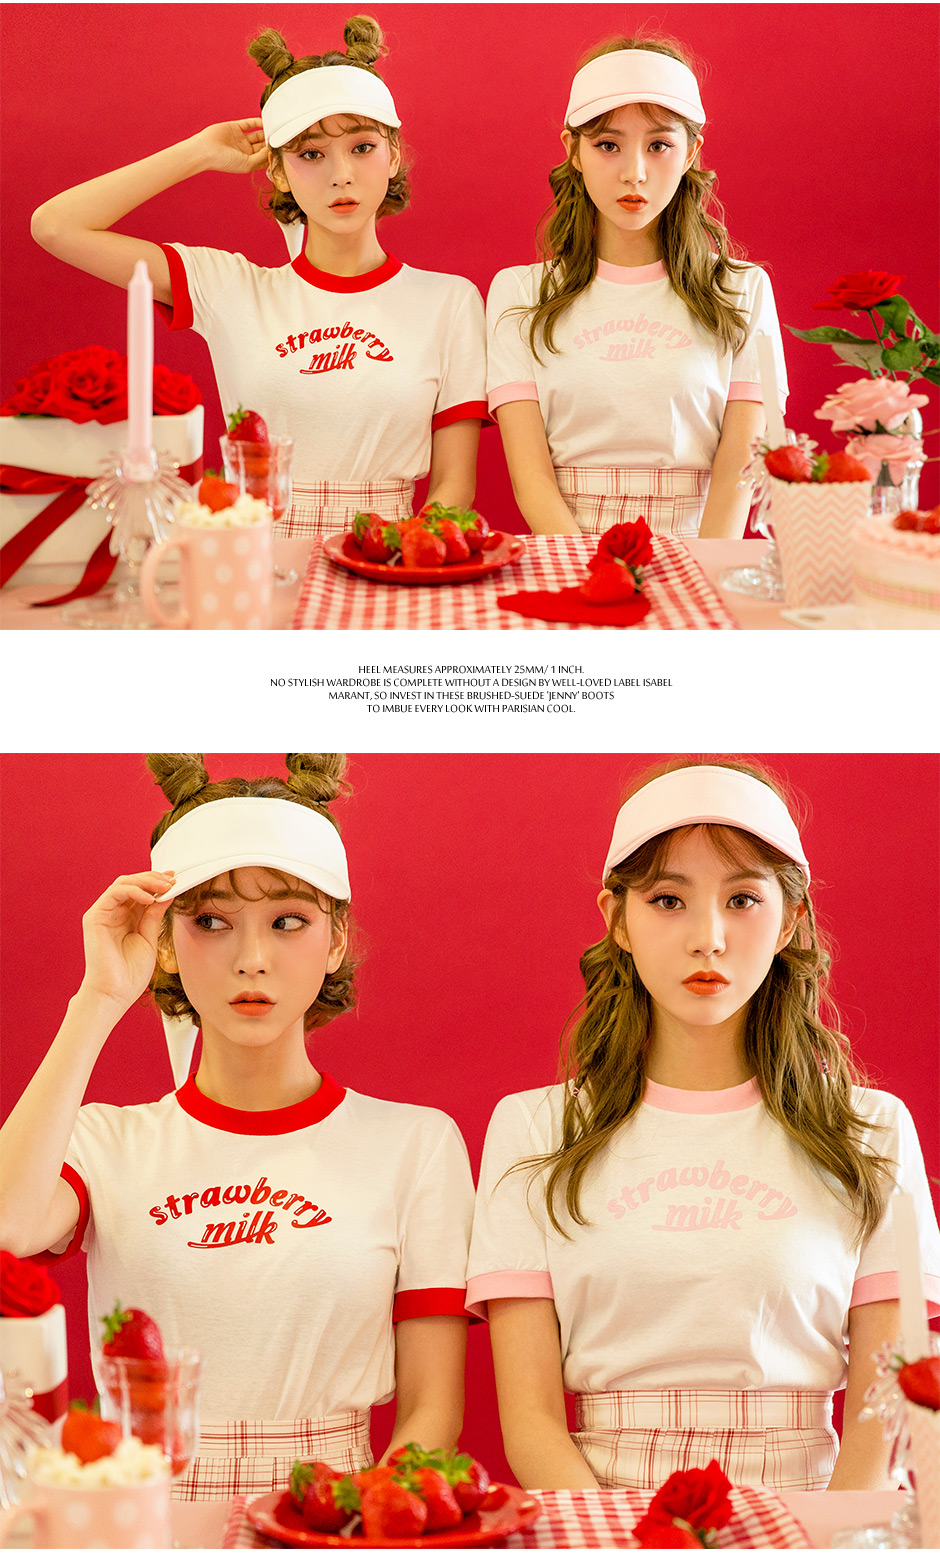 //cdn.nhanh.vn/cdn/store/29770/psCT/20180909/8968169/CHUU_Strawberry_Milk_Strawberry_Obsession_Tee_(2).jpg